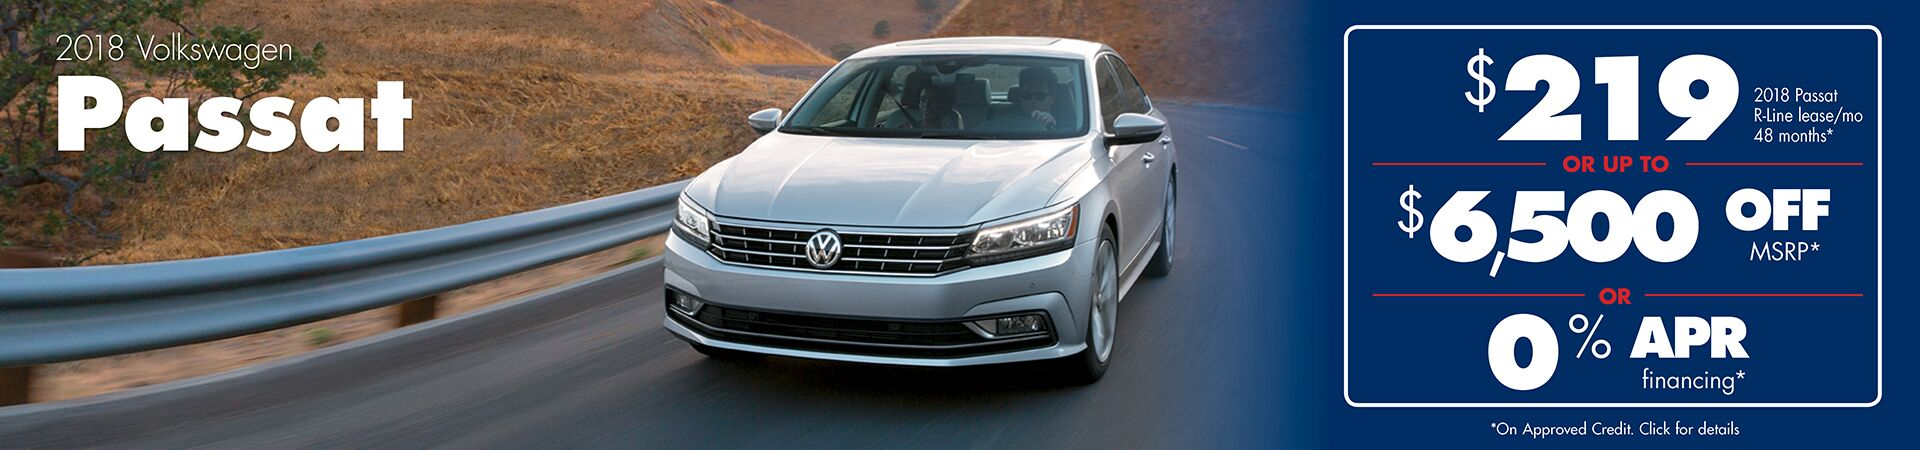 2018 Volkswagen Passat S Sales Special in Seattle, WA